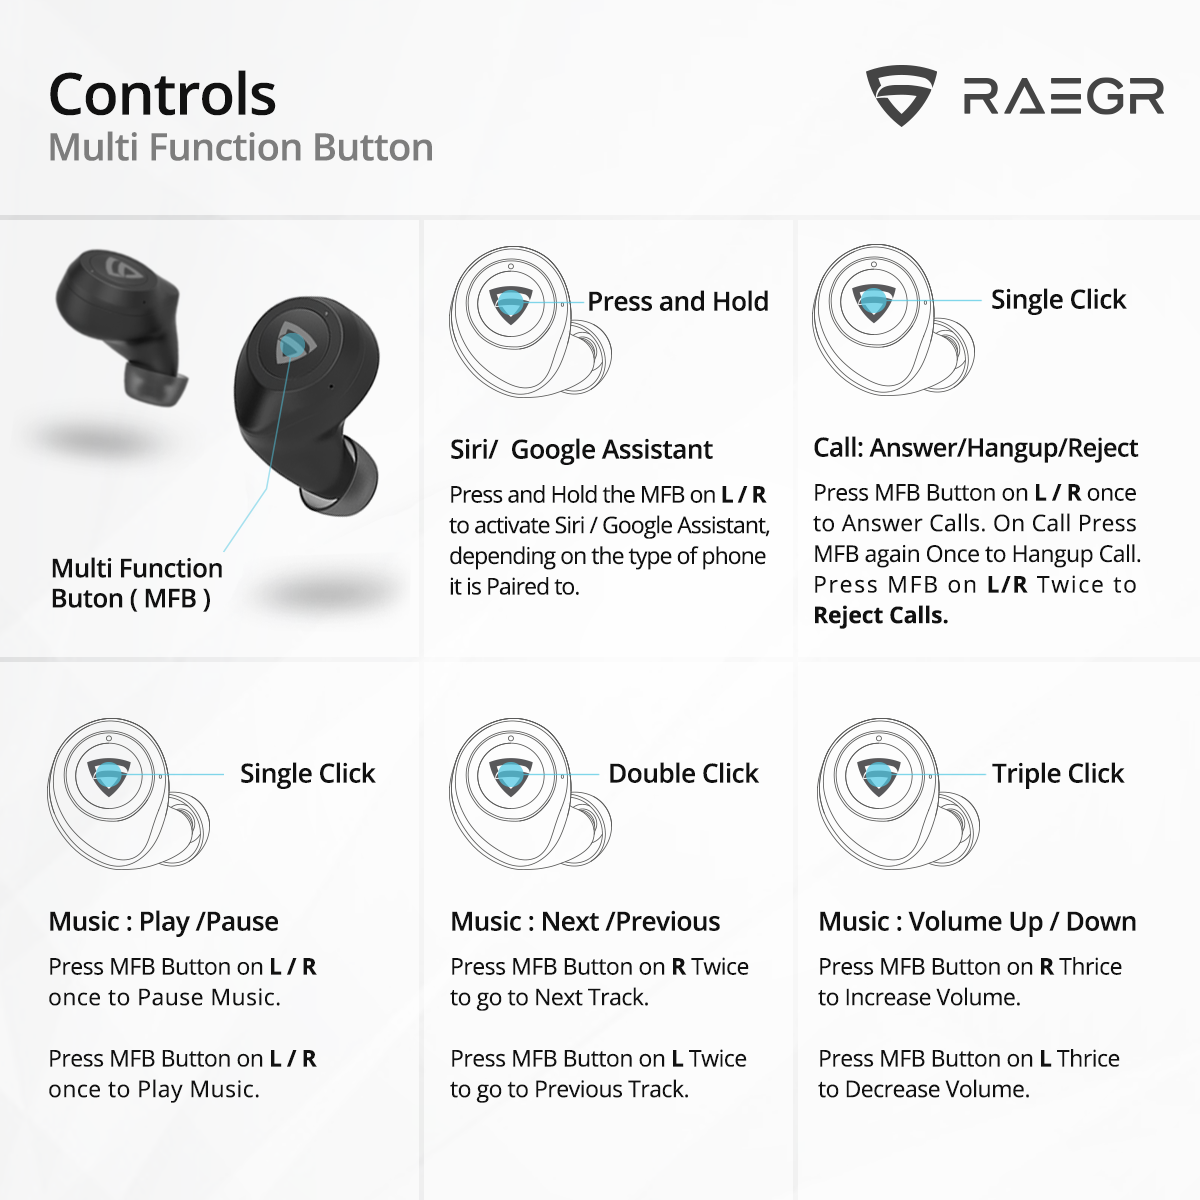 RAEGR AirShots 550 TWS Wireless Bluetooth Earbuds